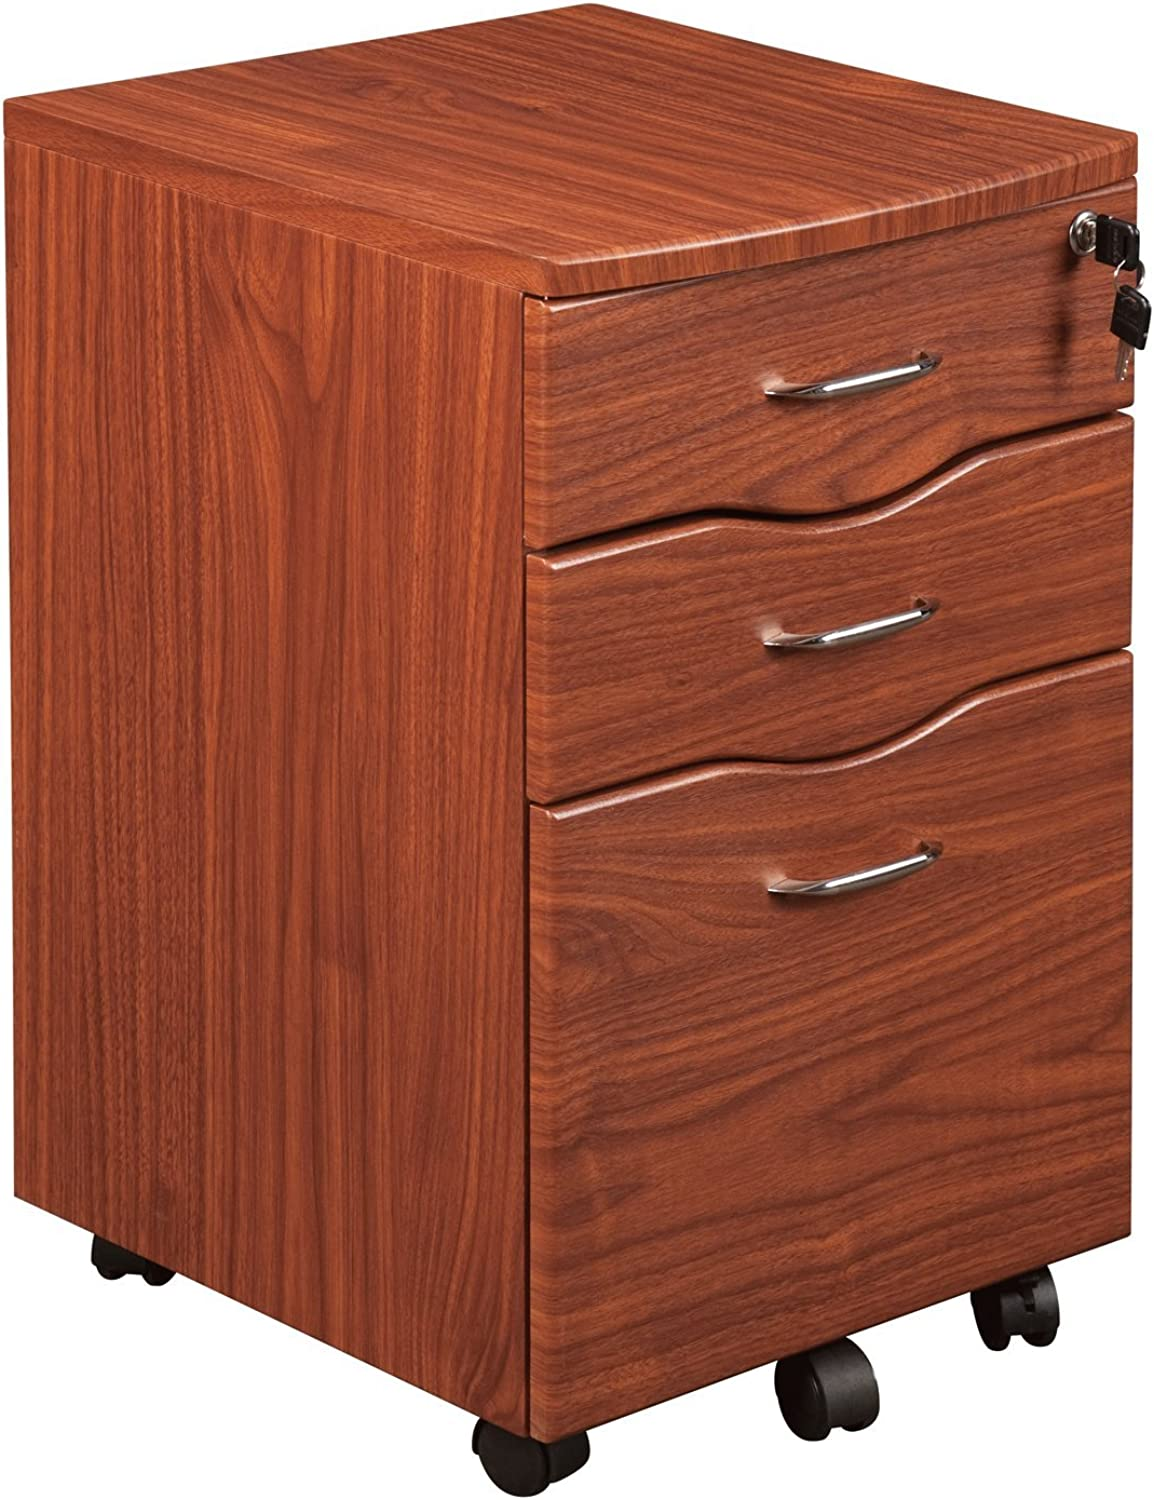 Techni Mobili Rolling File Cabinet with Storage, Mahogany